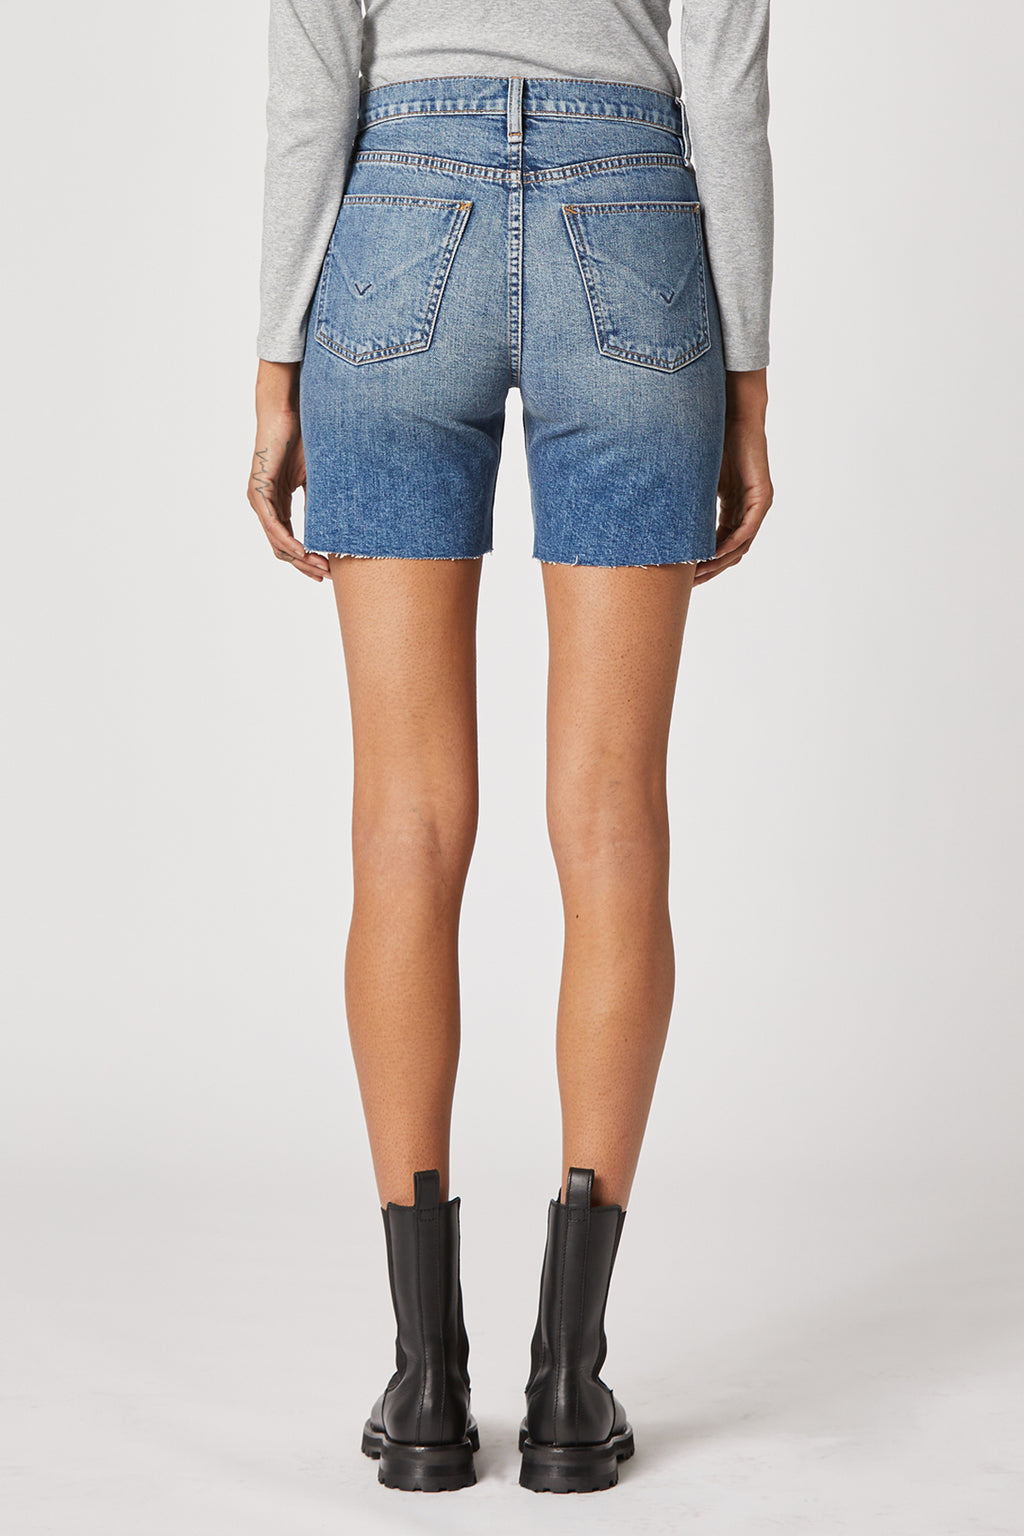 Hana High-Rise Biker Short